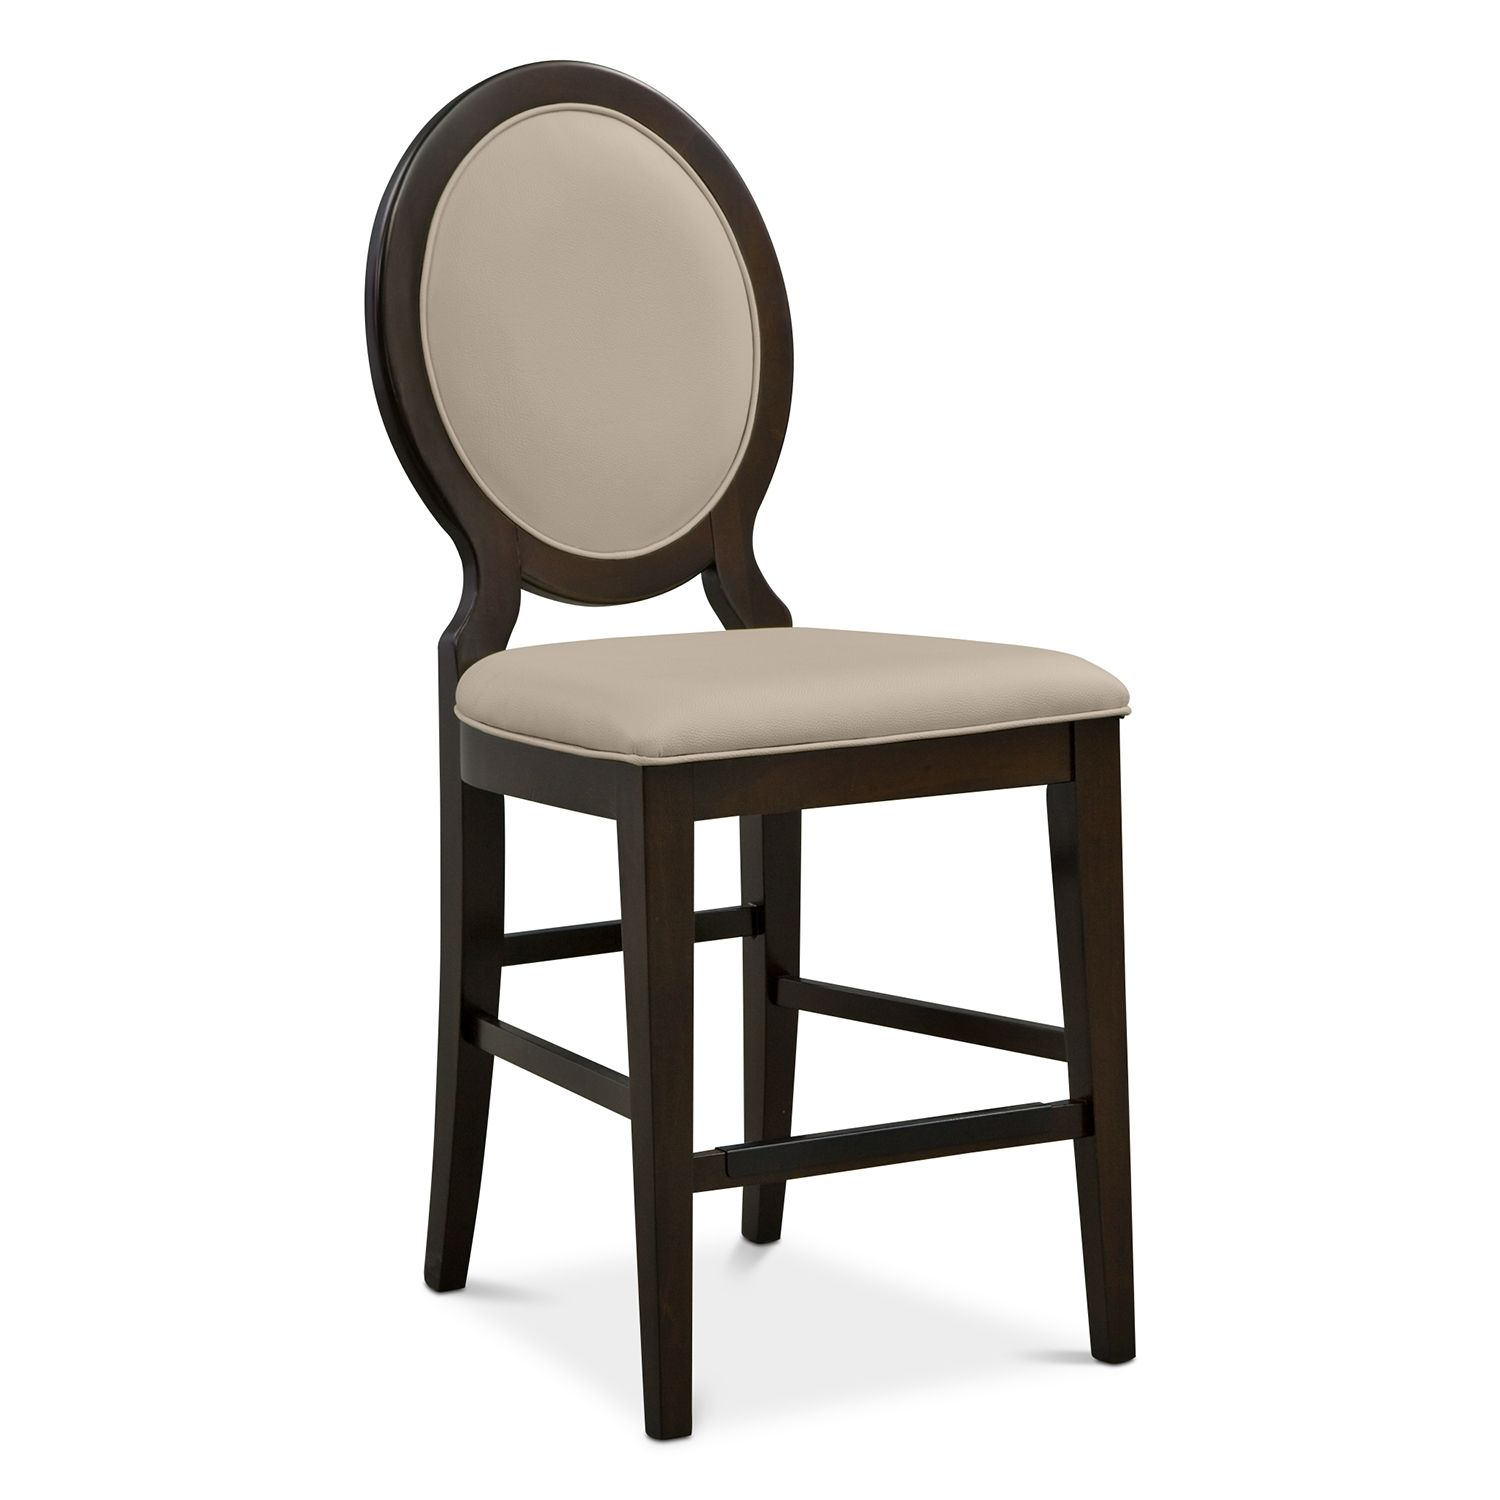 design bar folding and height fantastic cheap upholstered furniture ikea leather barstools counter cool backless wood top bath chairs chair swivel bey saddle kitchen rustic stools turquoise